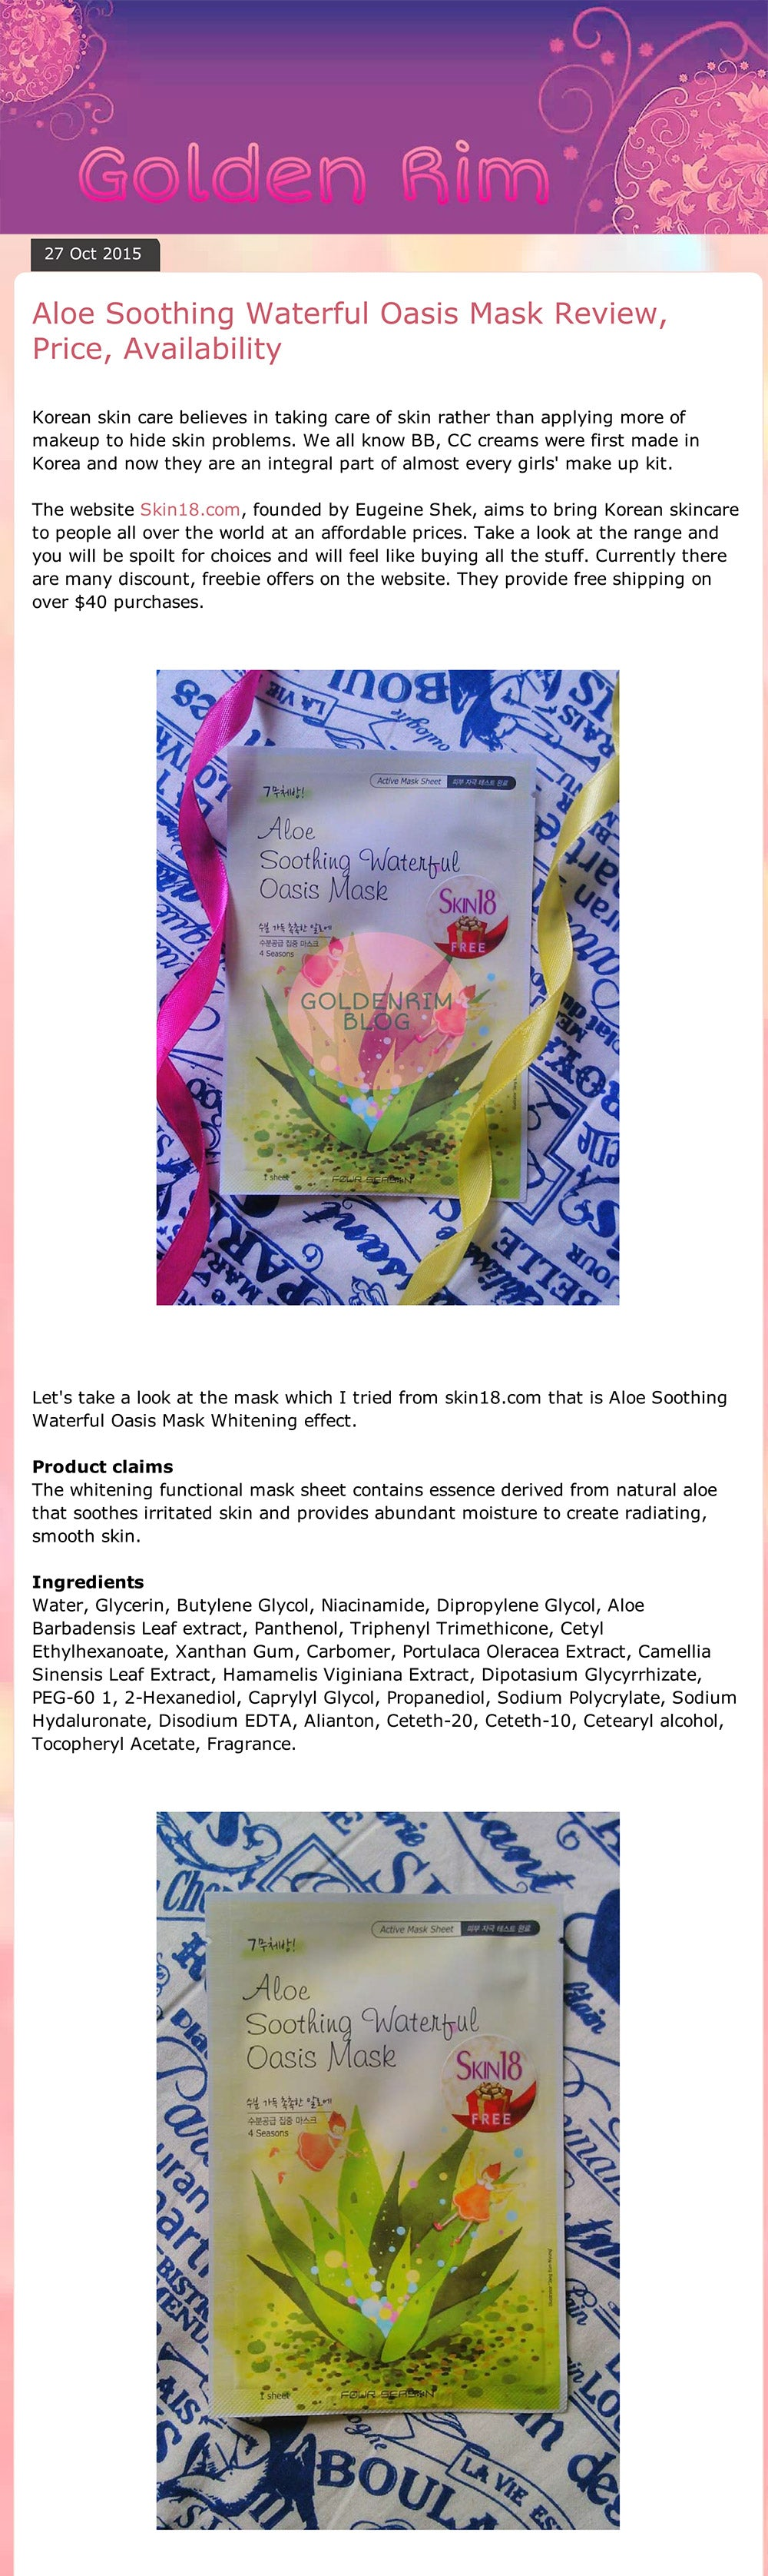 (Blogger : goldenrim.blogspot.com) Aloe Soothing Waterful Oasis Mask Review, Price, Availability